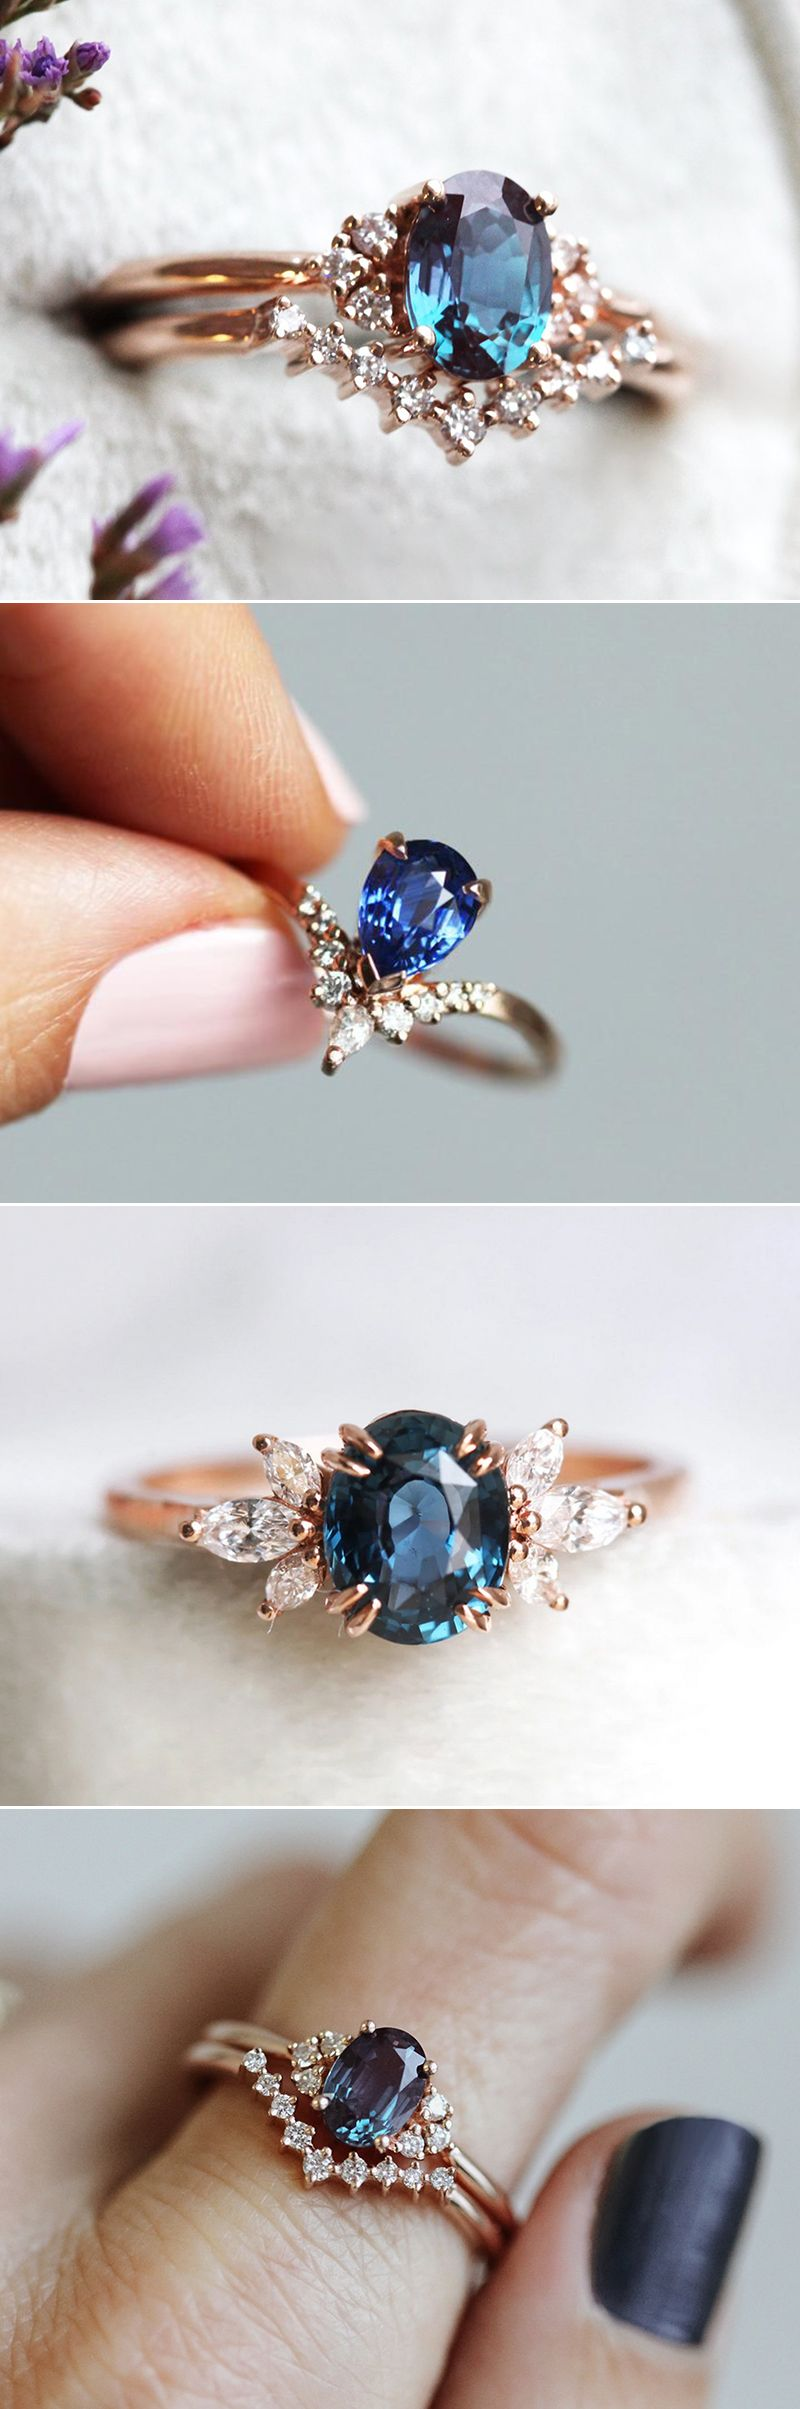 Why Colored Stone Engagement Rings Are Crazy Popular? 6